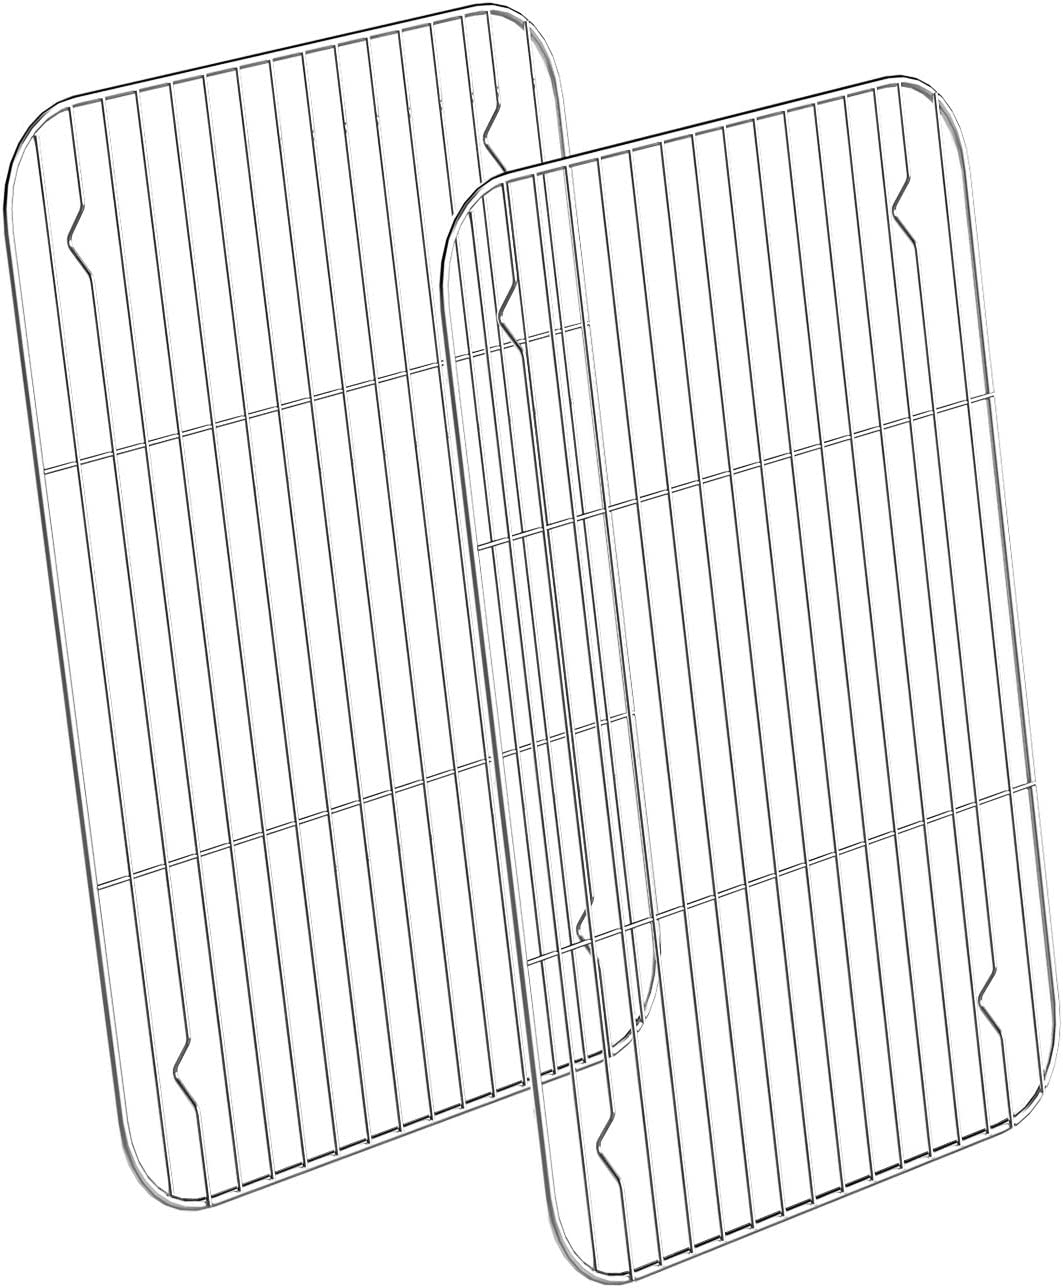 Stainless Steel Cooling Racks 2 Pack, HKJ Chef Baking Racks Size 10 x 8 x1Inch for Cooking Baking Roasting Grilling Cooling, Fit Various Size Cookie Sheets Oven & Health & Dishwasher Safe